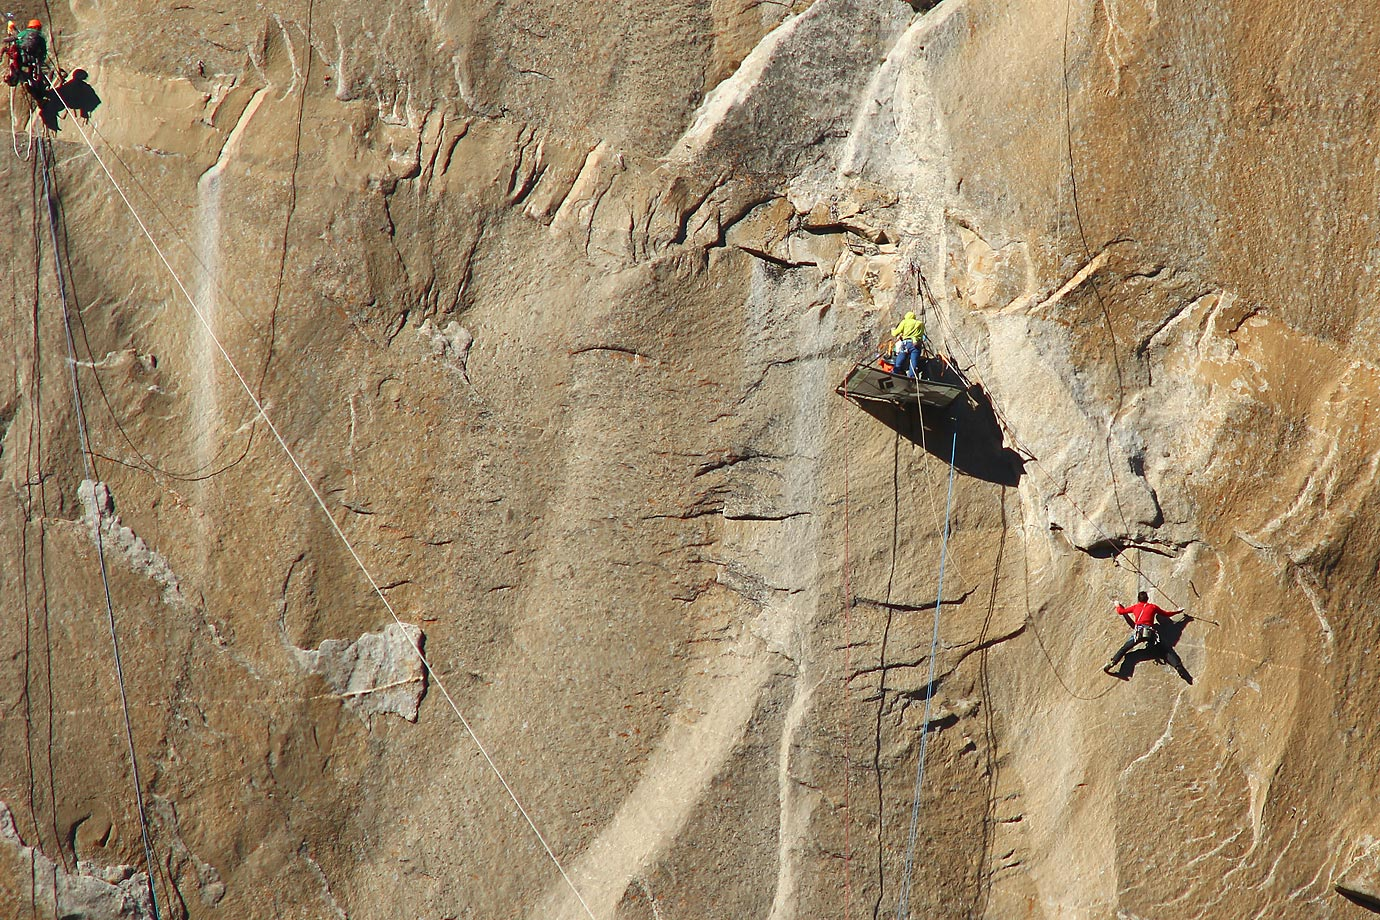 Kevin Jorgeson (in red) Climbing High up on Pitch 13 – Tommy in yellow and photographer in green.